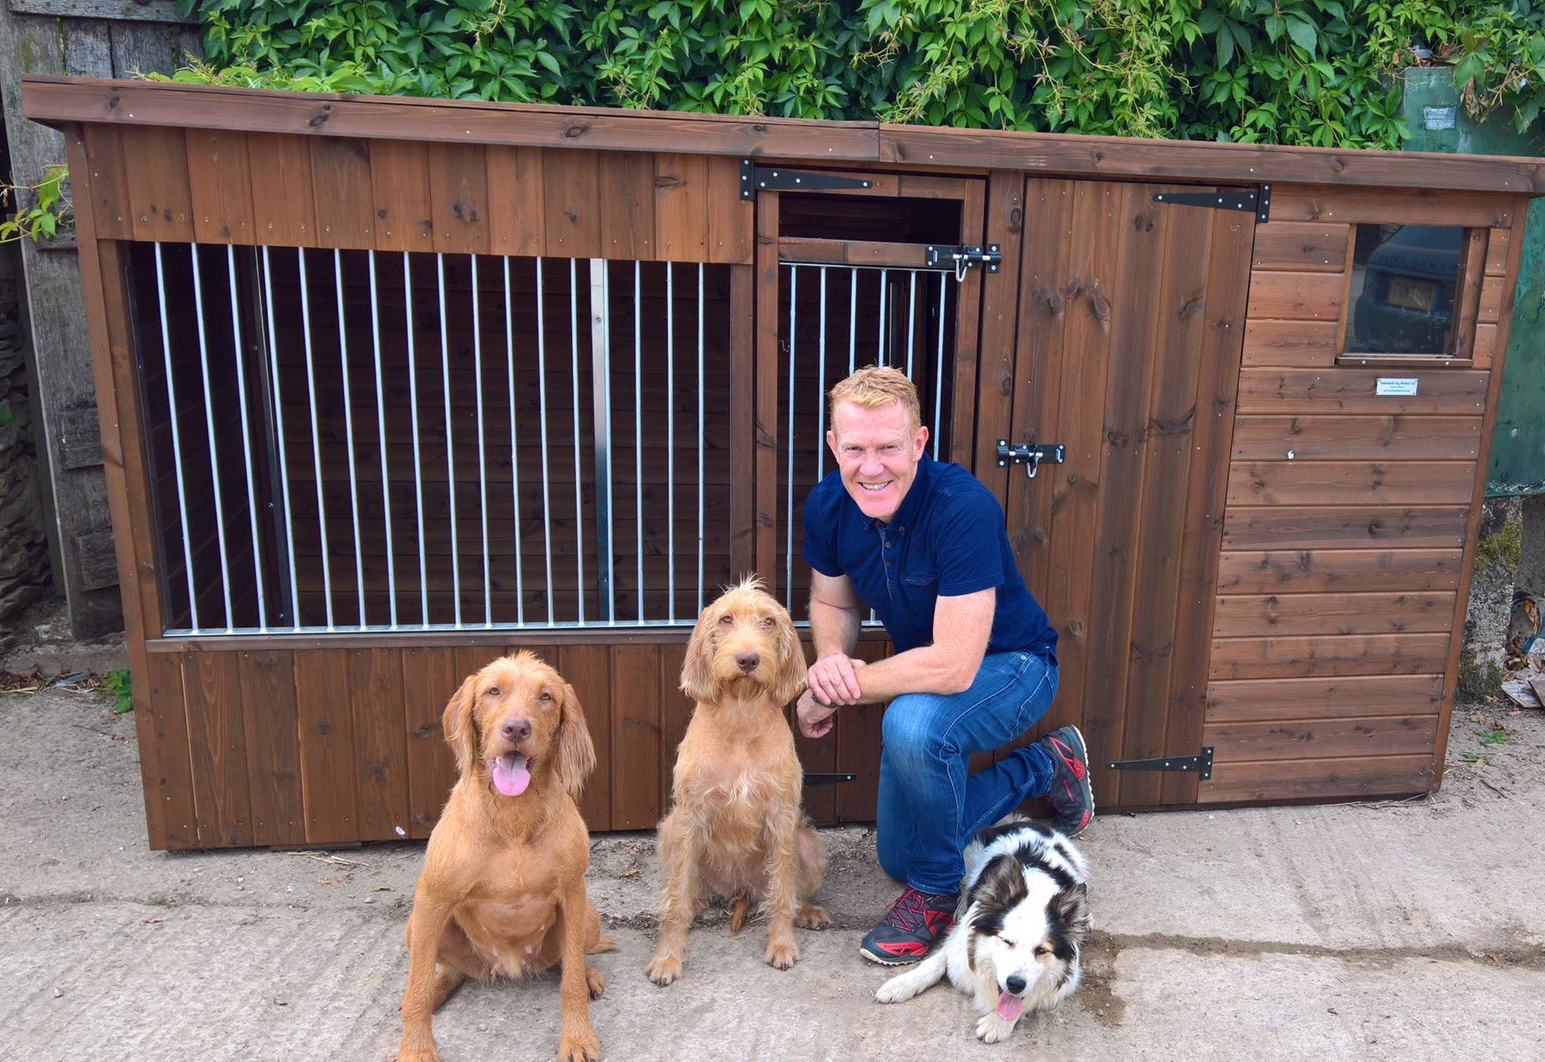 Adam Henson with his new Chappell